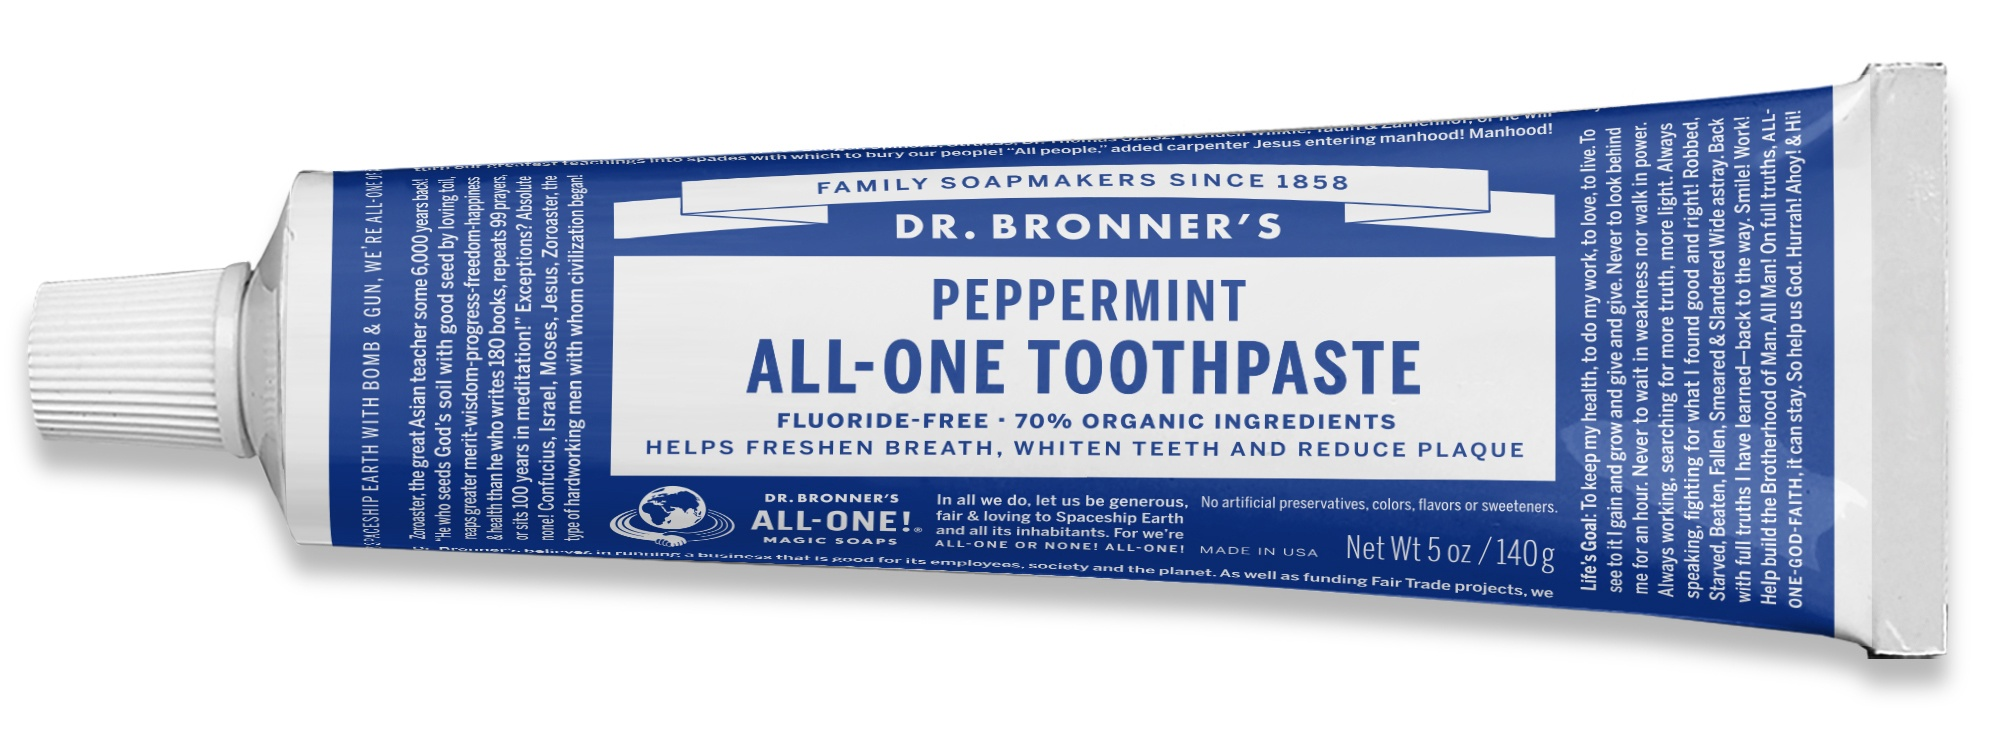 Ultimate Guide 9 Best Cruelty Free Vegan Toothpaste Brands